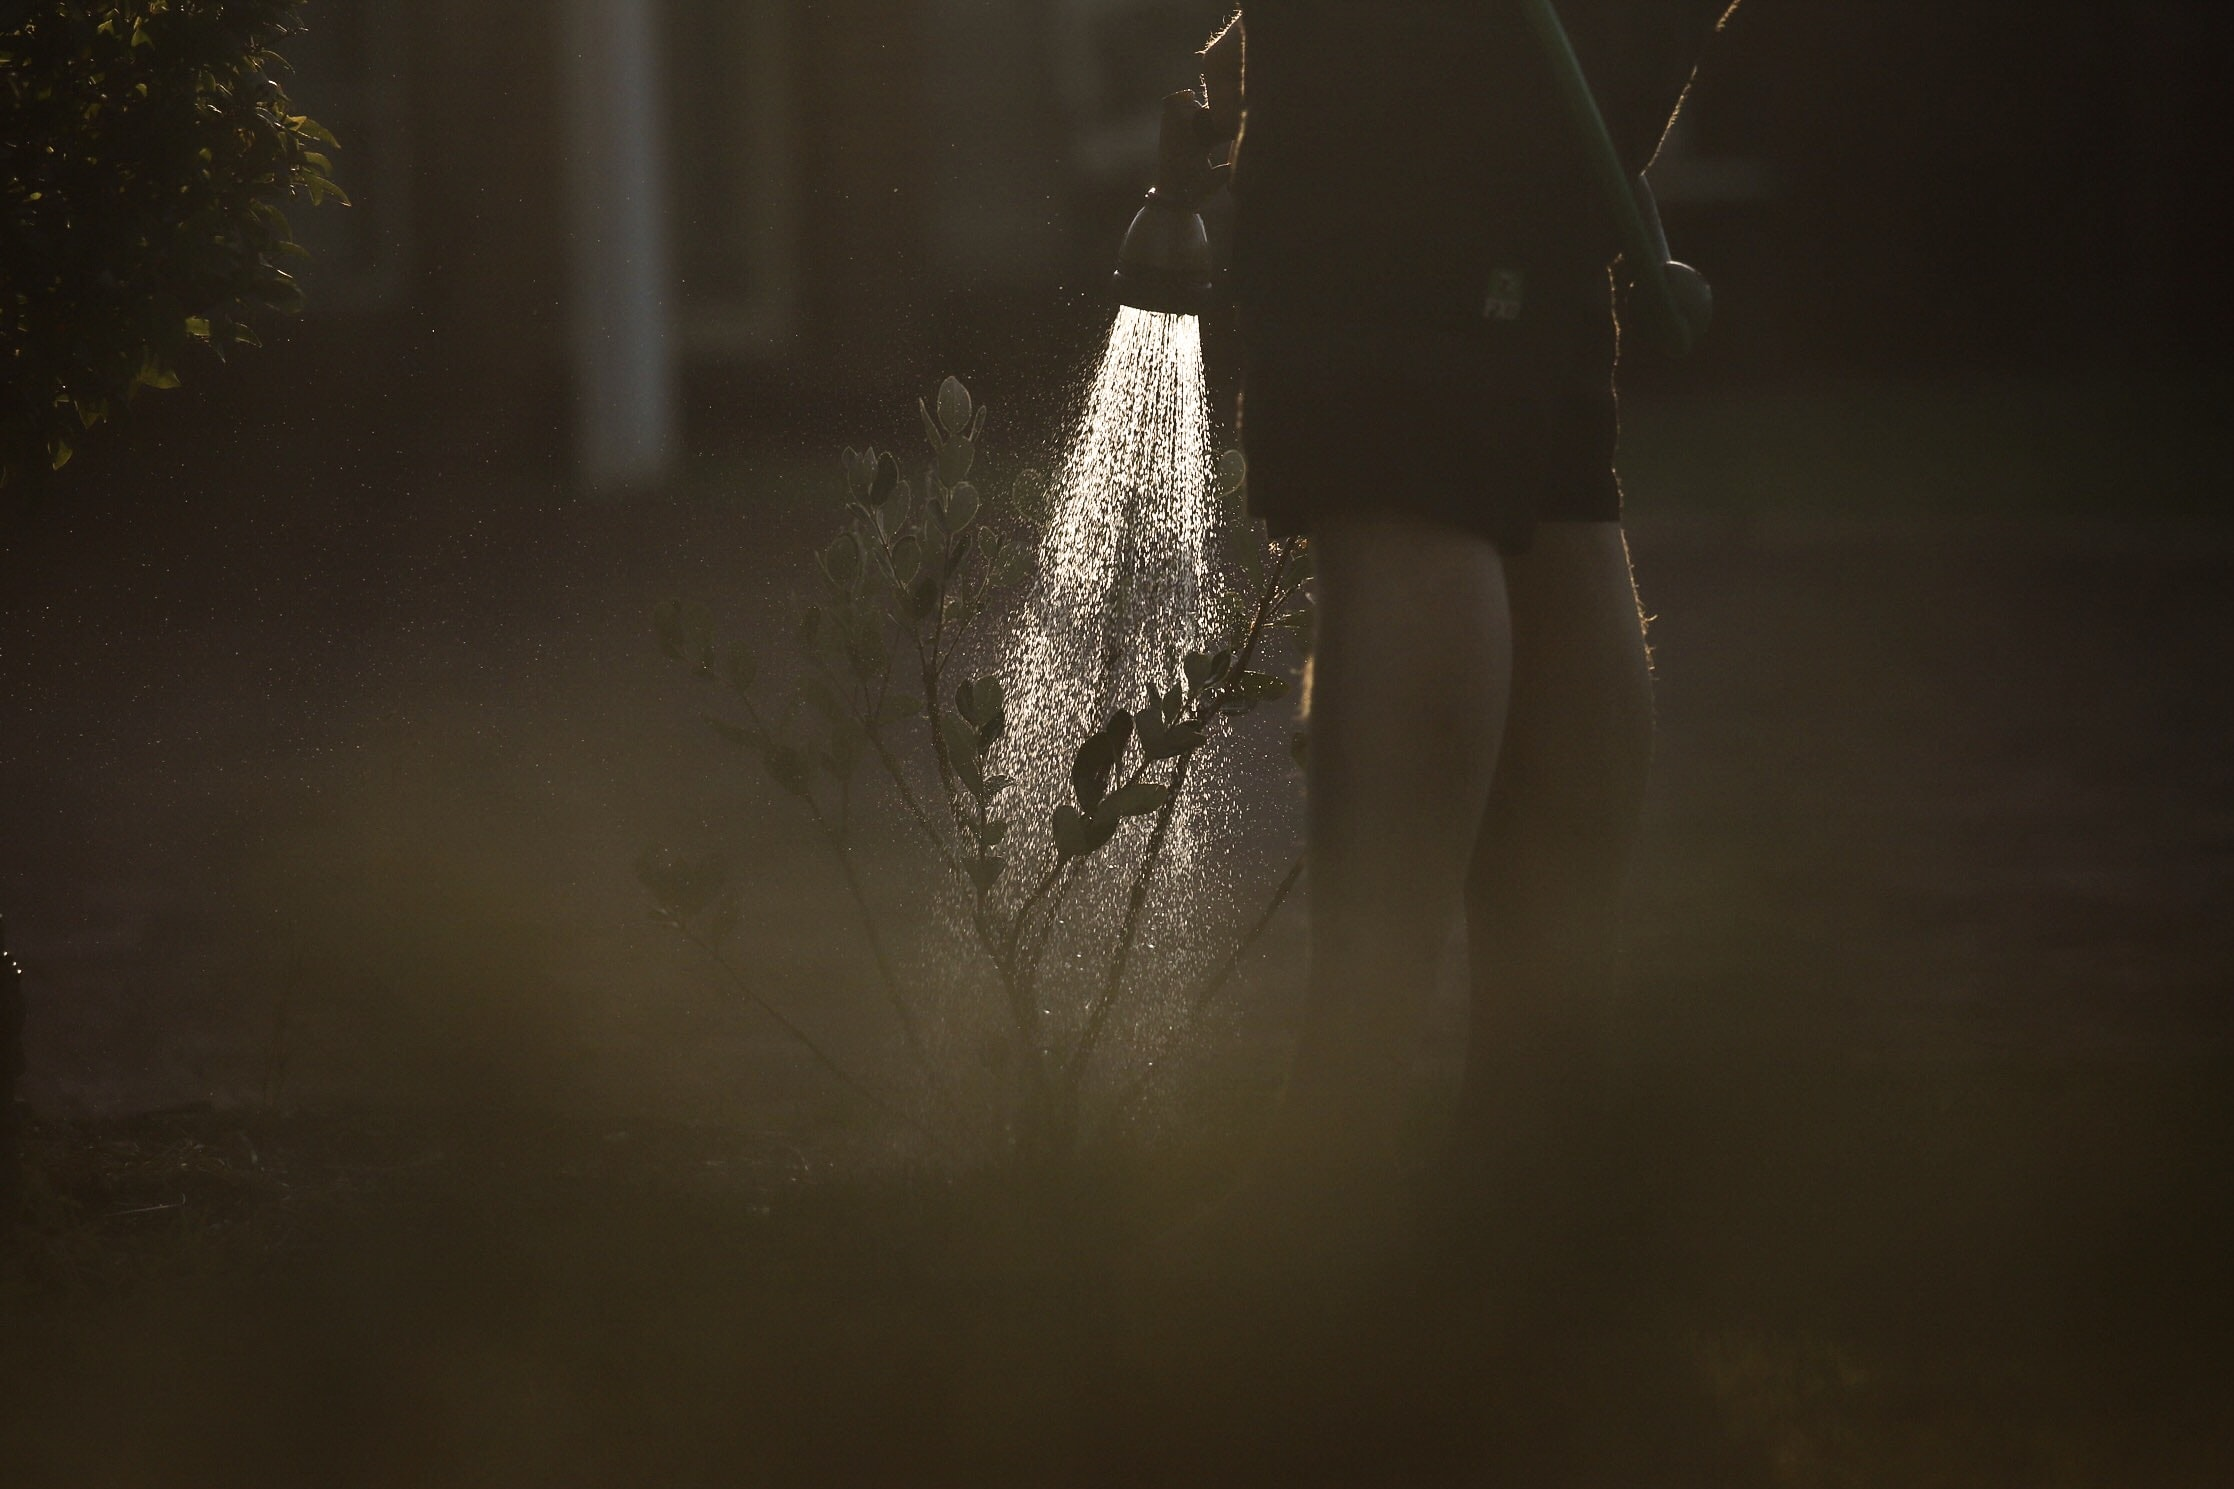 photo of person watering plant